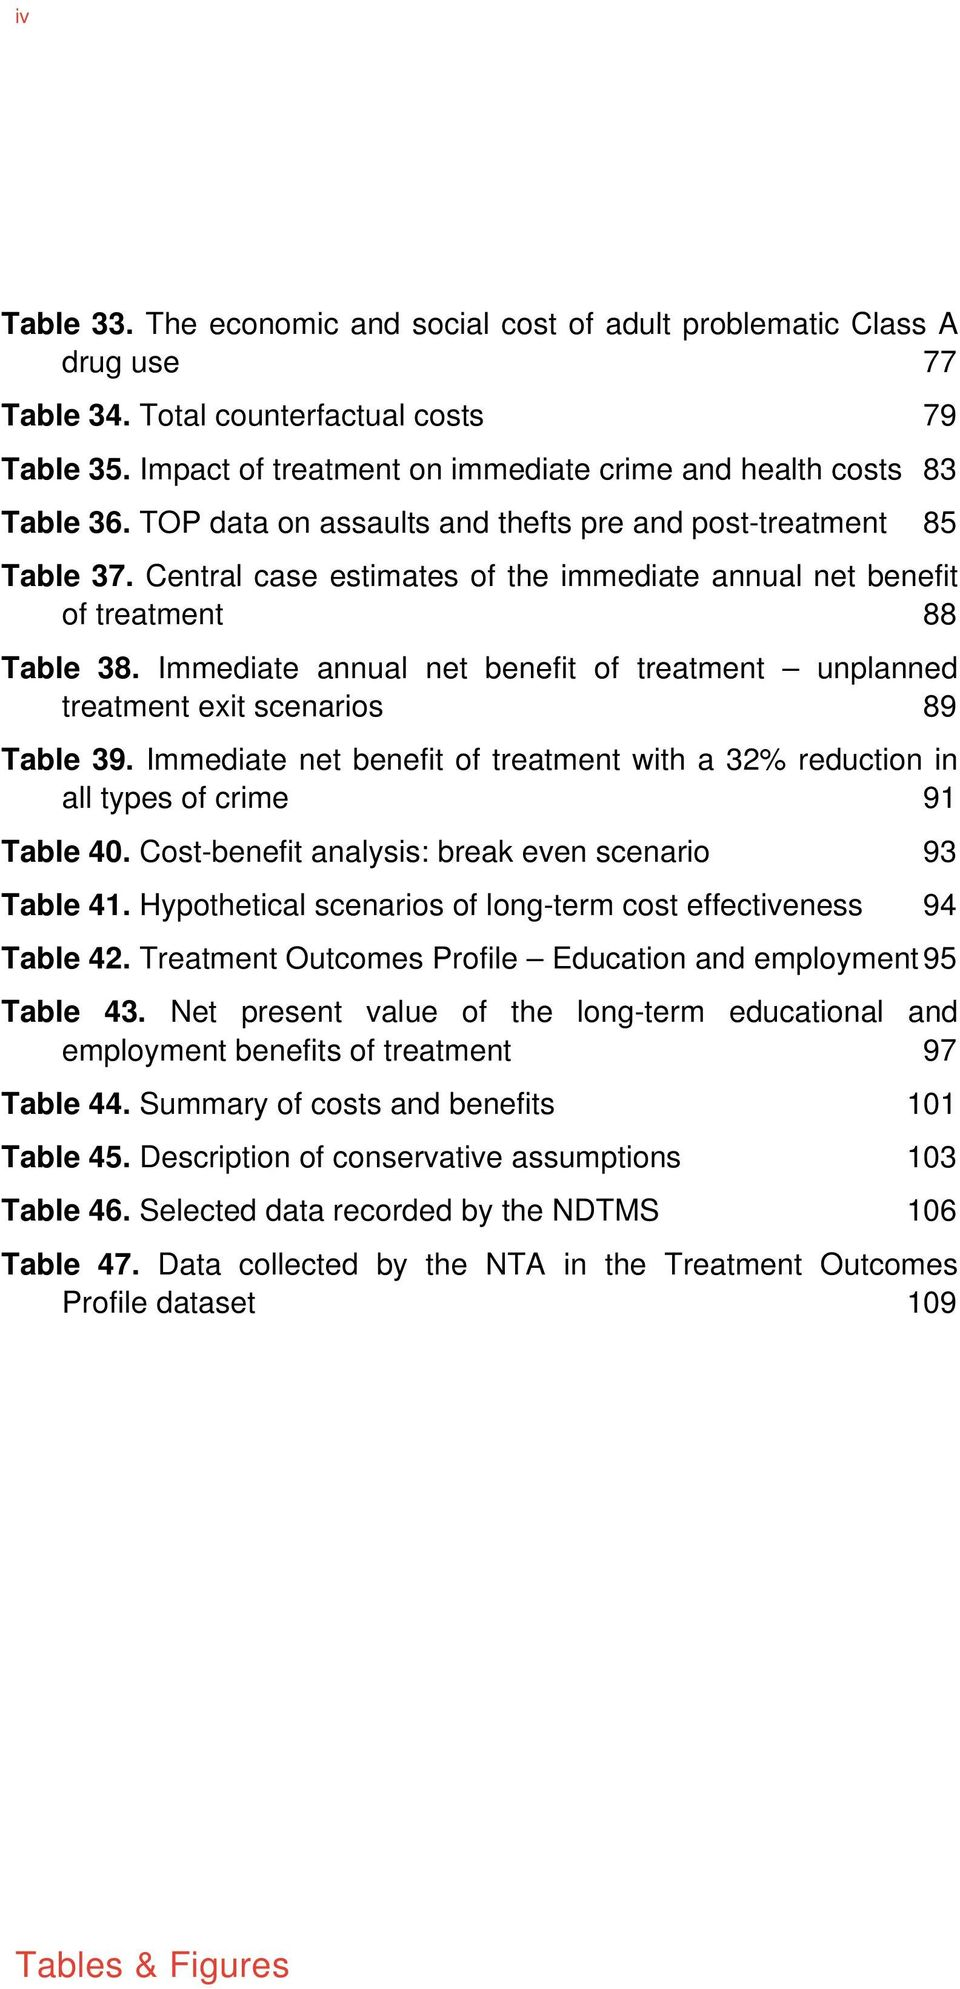 Immediate annual net benefit of treatment unplanned treatment exit scenarios 89 Table 39. Immediate net benefit of treatment with a 32% reduction in all types of crime 91 Table 40.